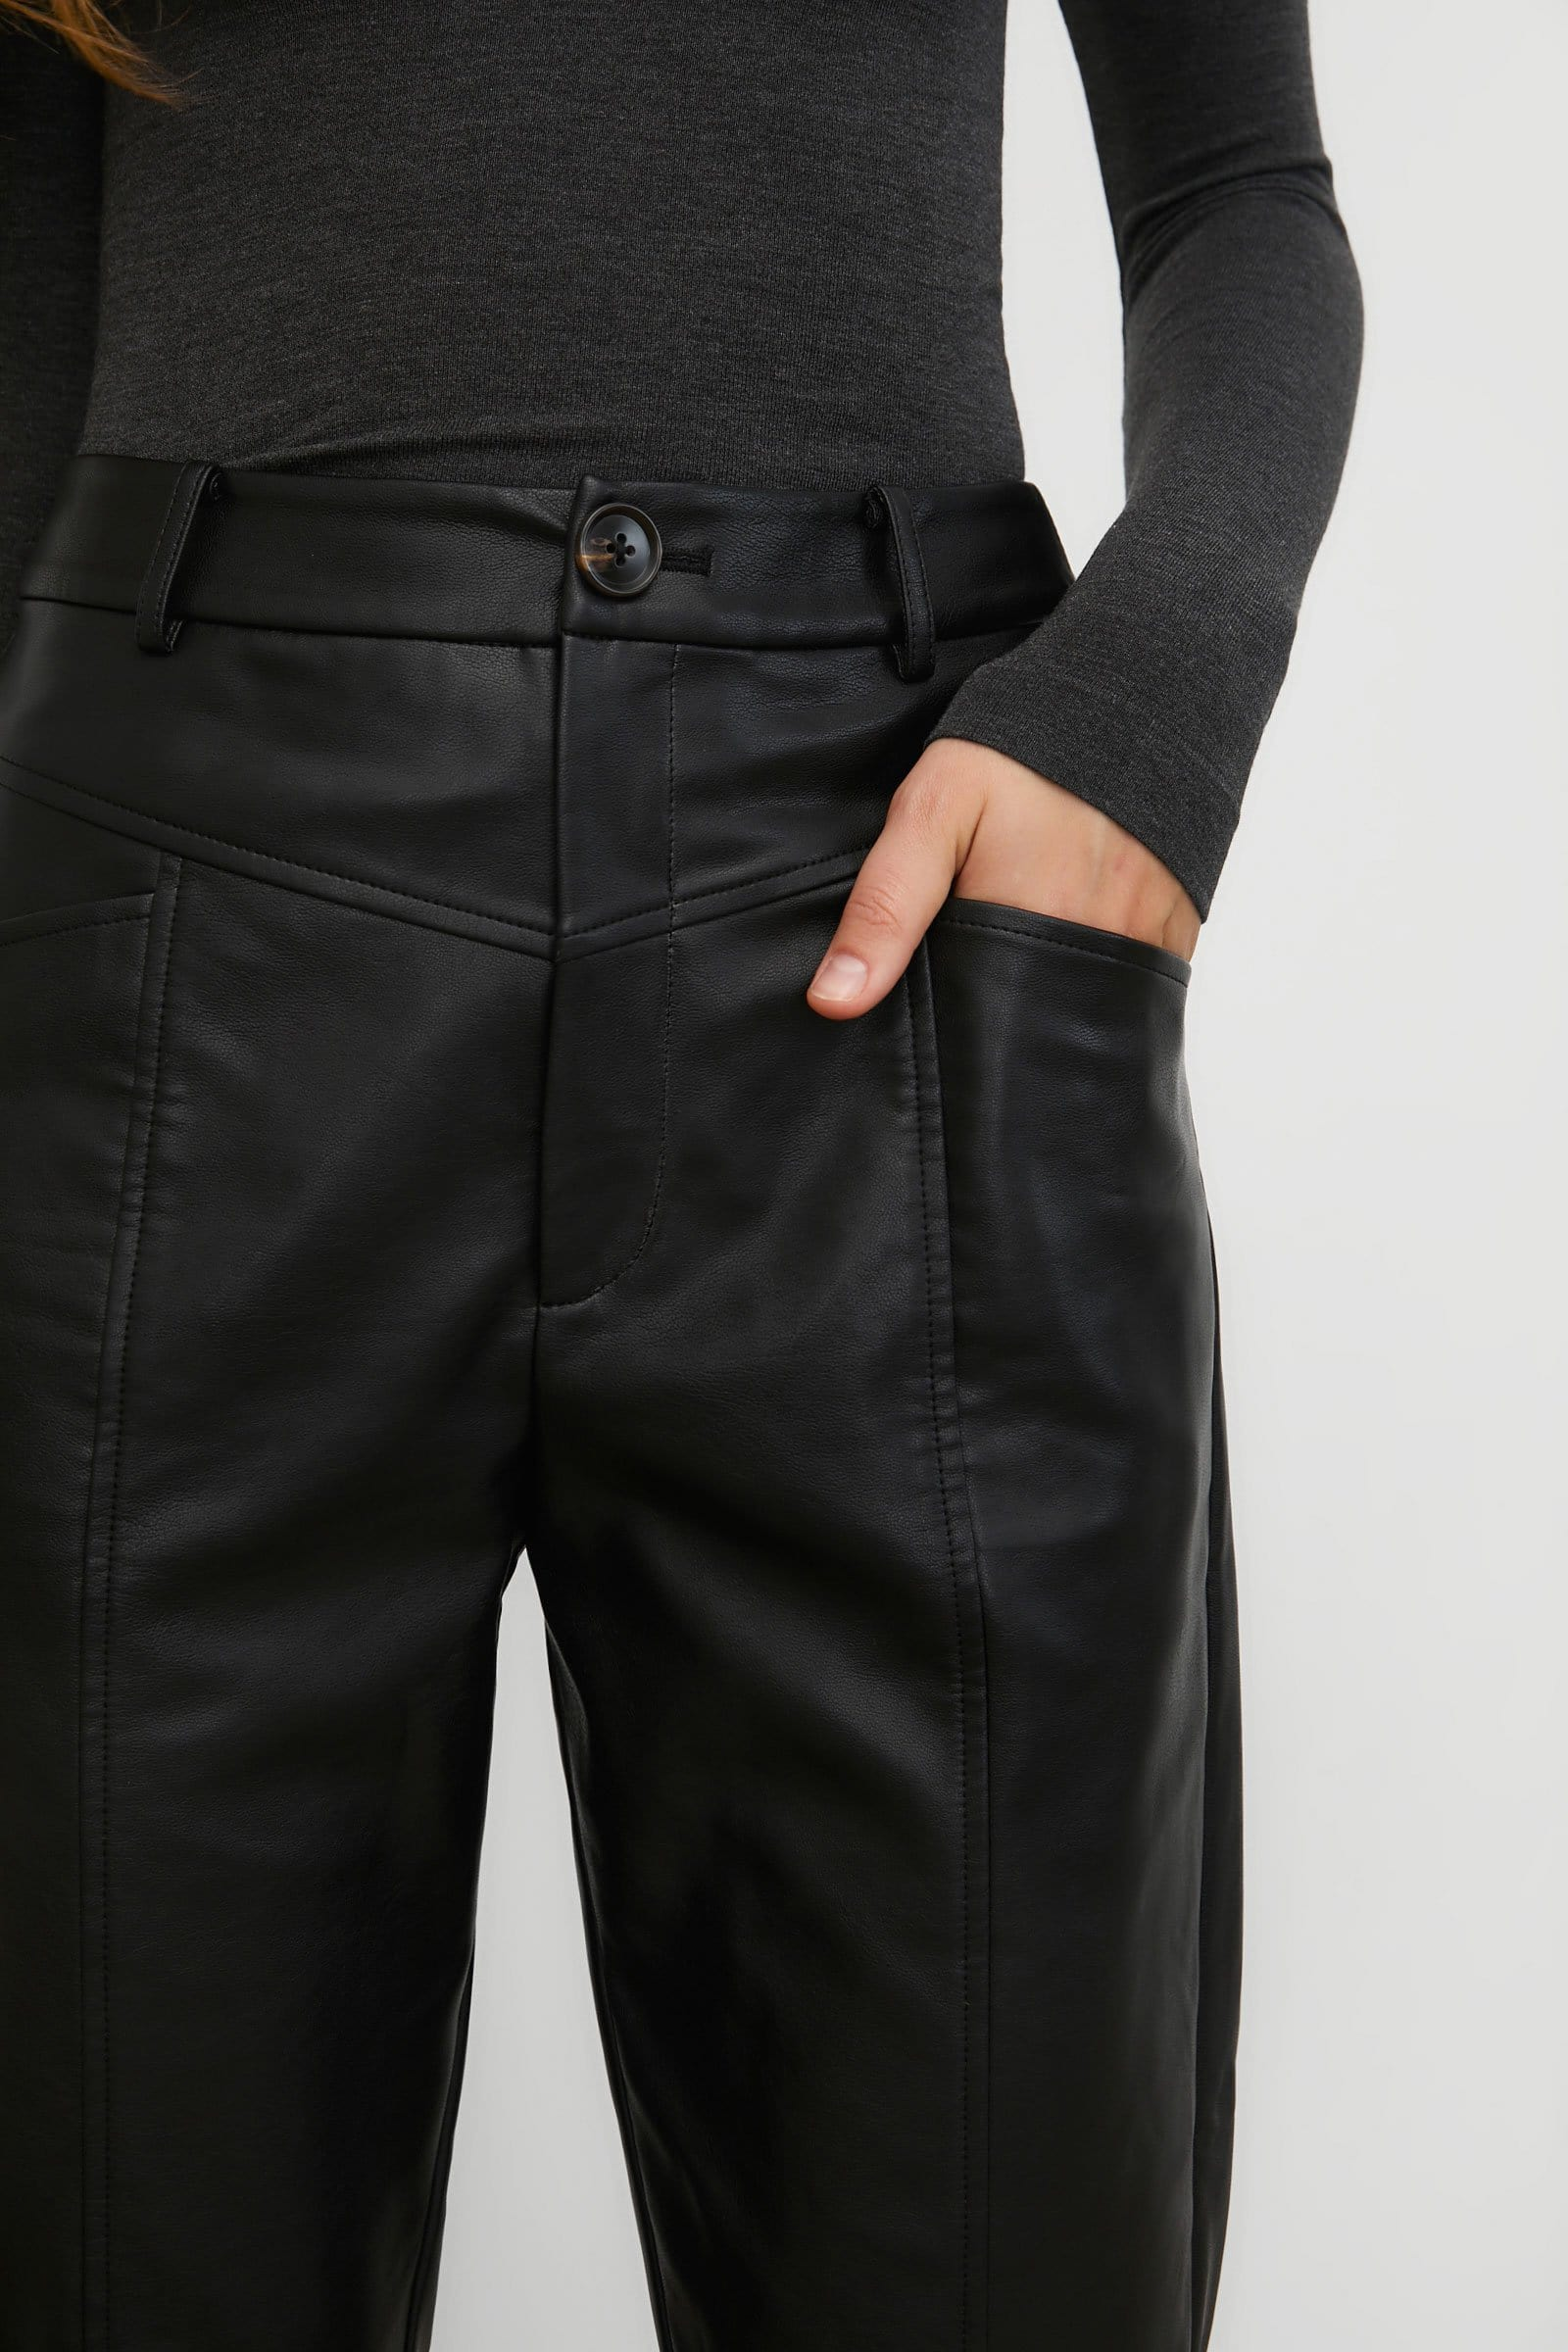 Steph Black Leather Trousers